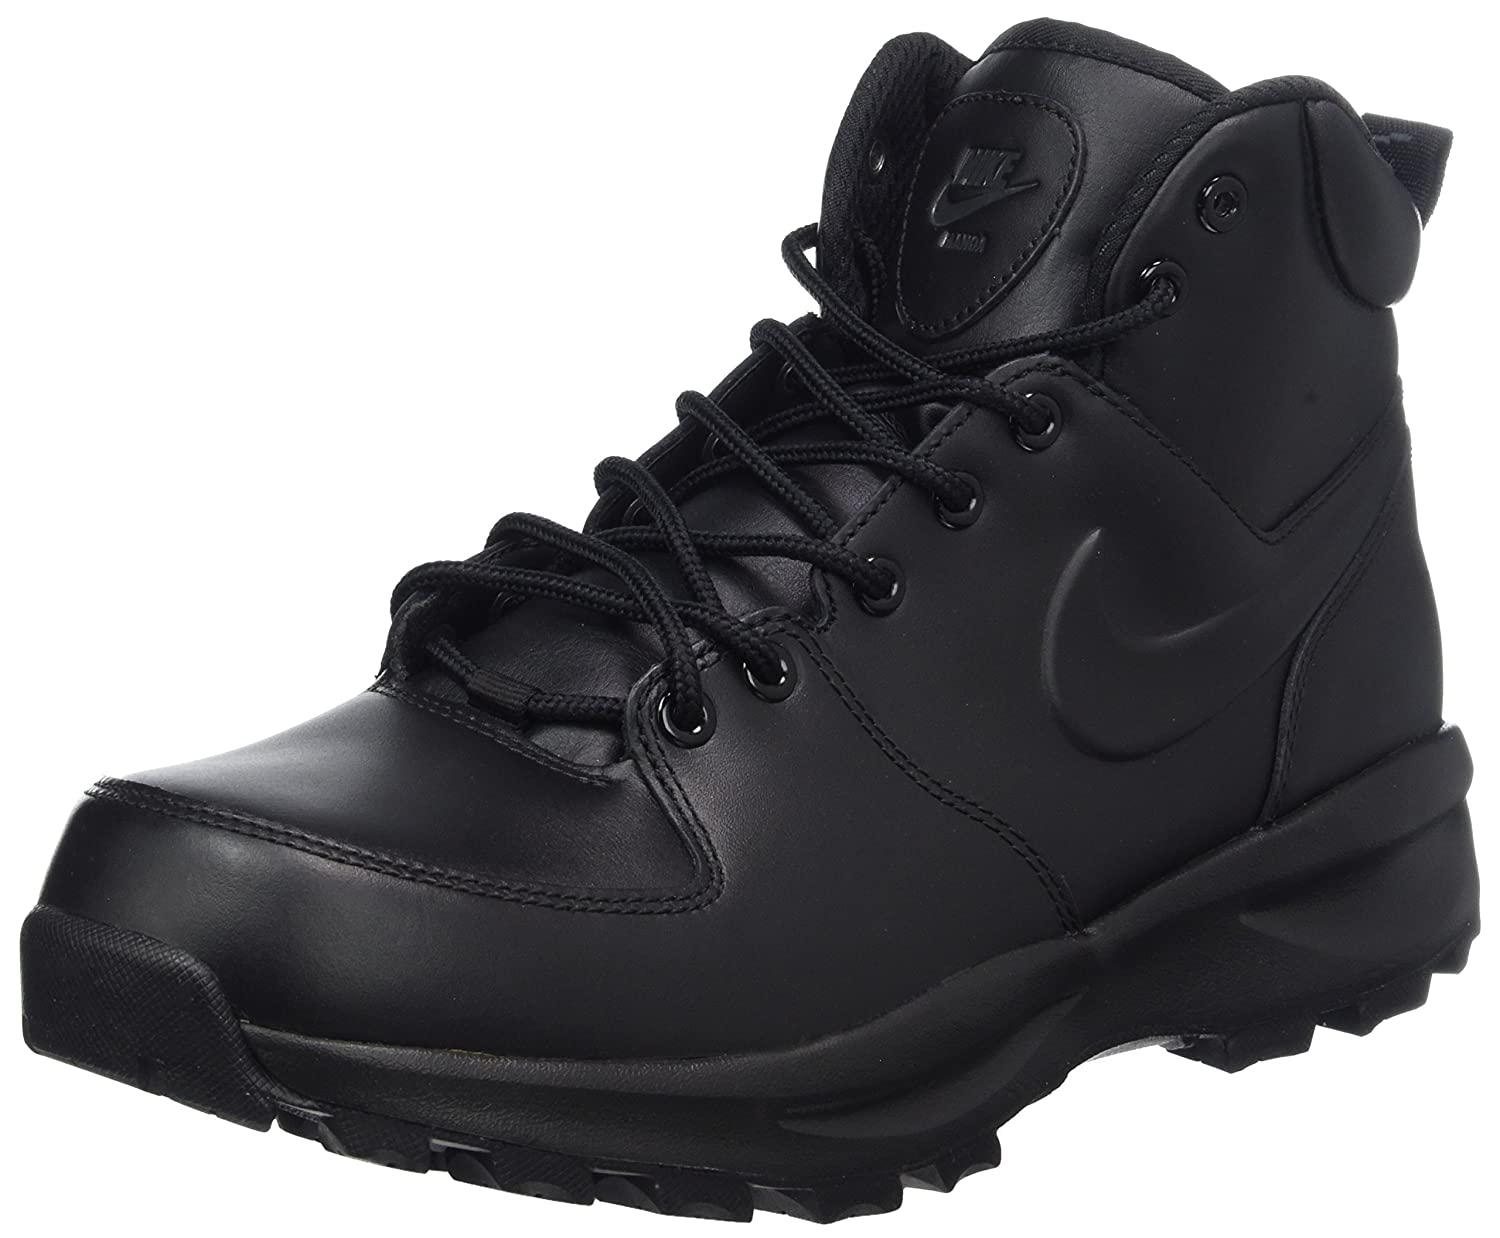 161a5708437 Nike Men's Manoa Leather Hiking Boot